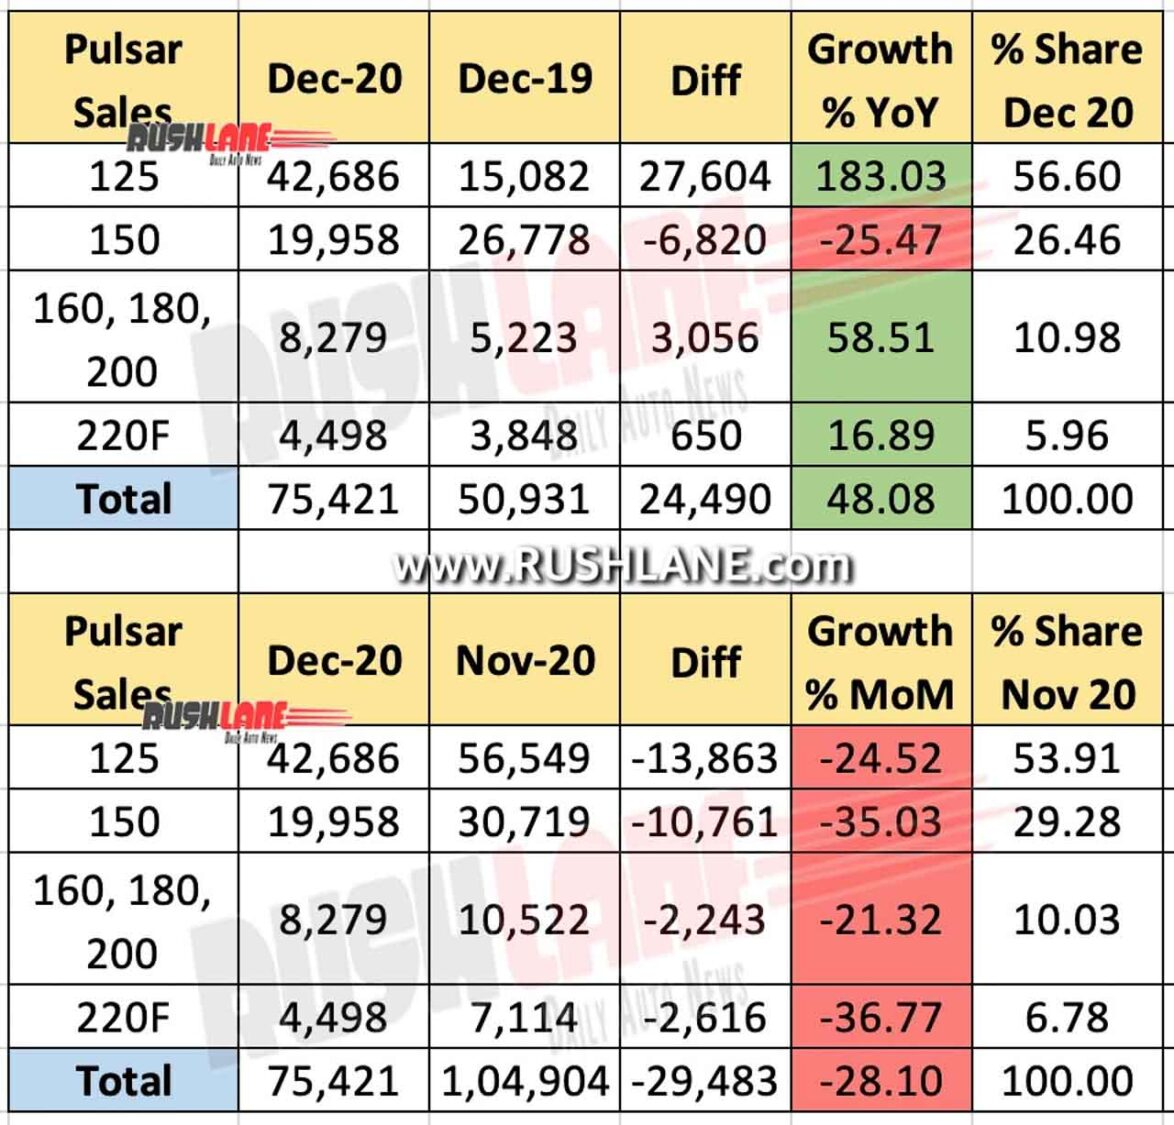 Bajaj Pulsar Domestic Sales Dec 2020